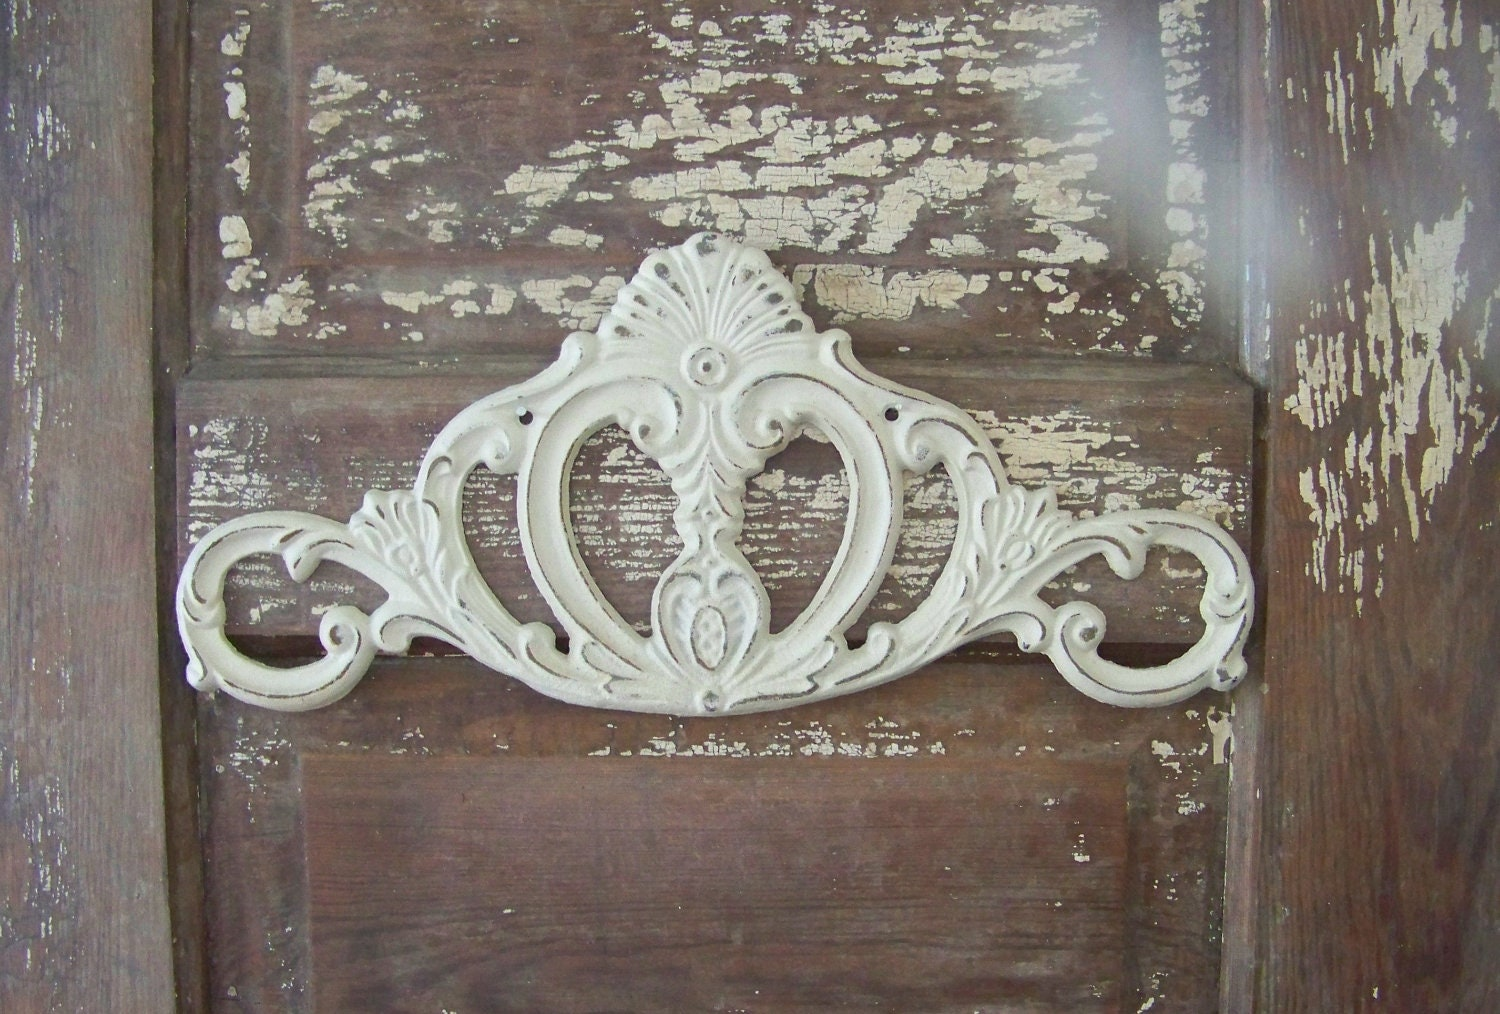 cast iron wall home decor shabby chic scroll hanging. Black Bedroom Furniture Sets. Home Design Ideas